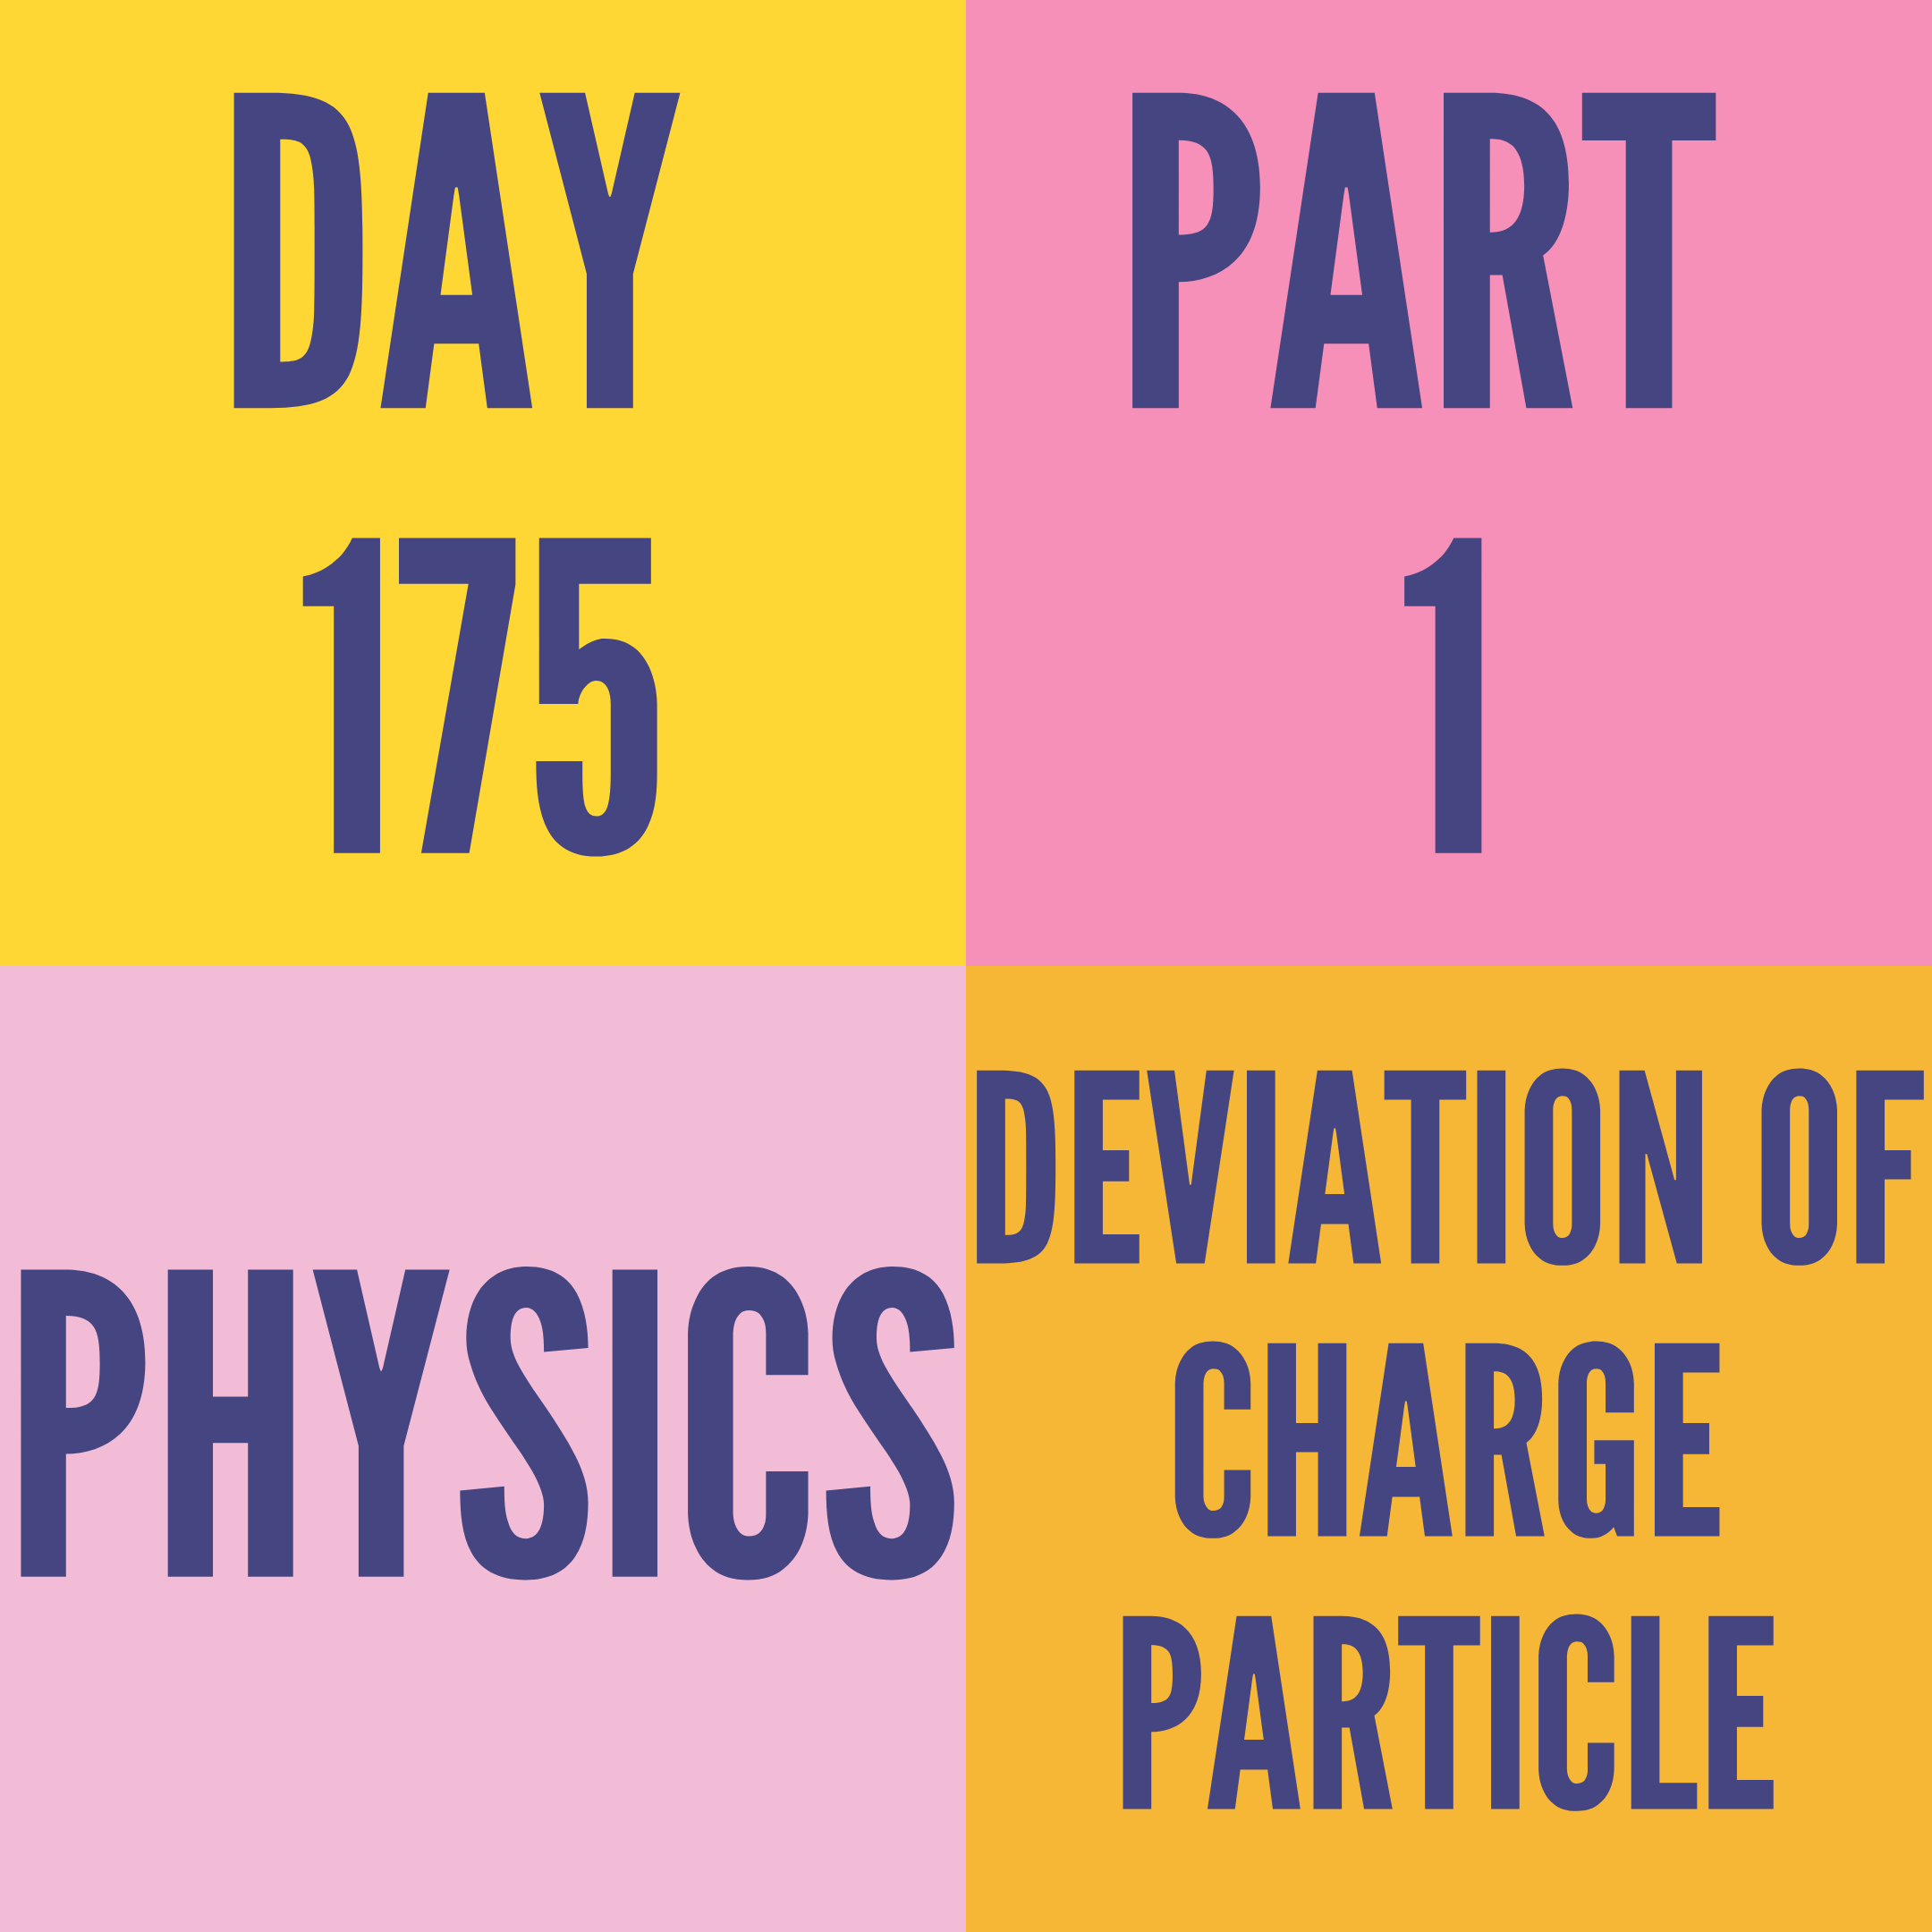 DAY-175 PART-1 DEVIATION OF CHARGE PARTICLE